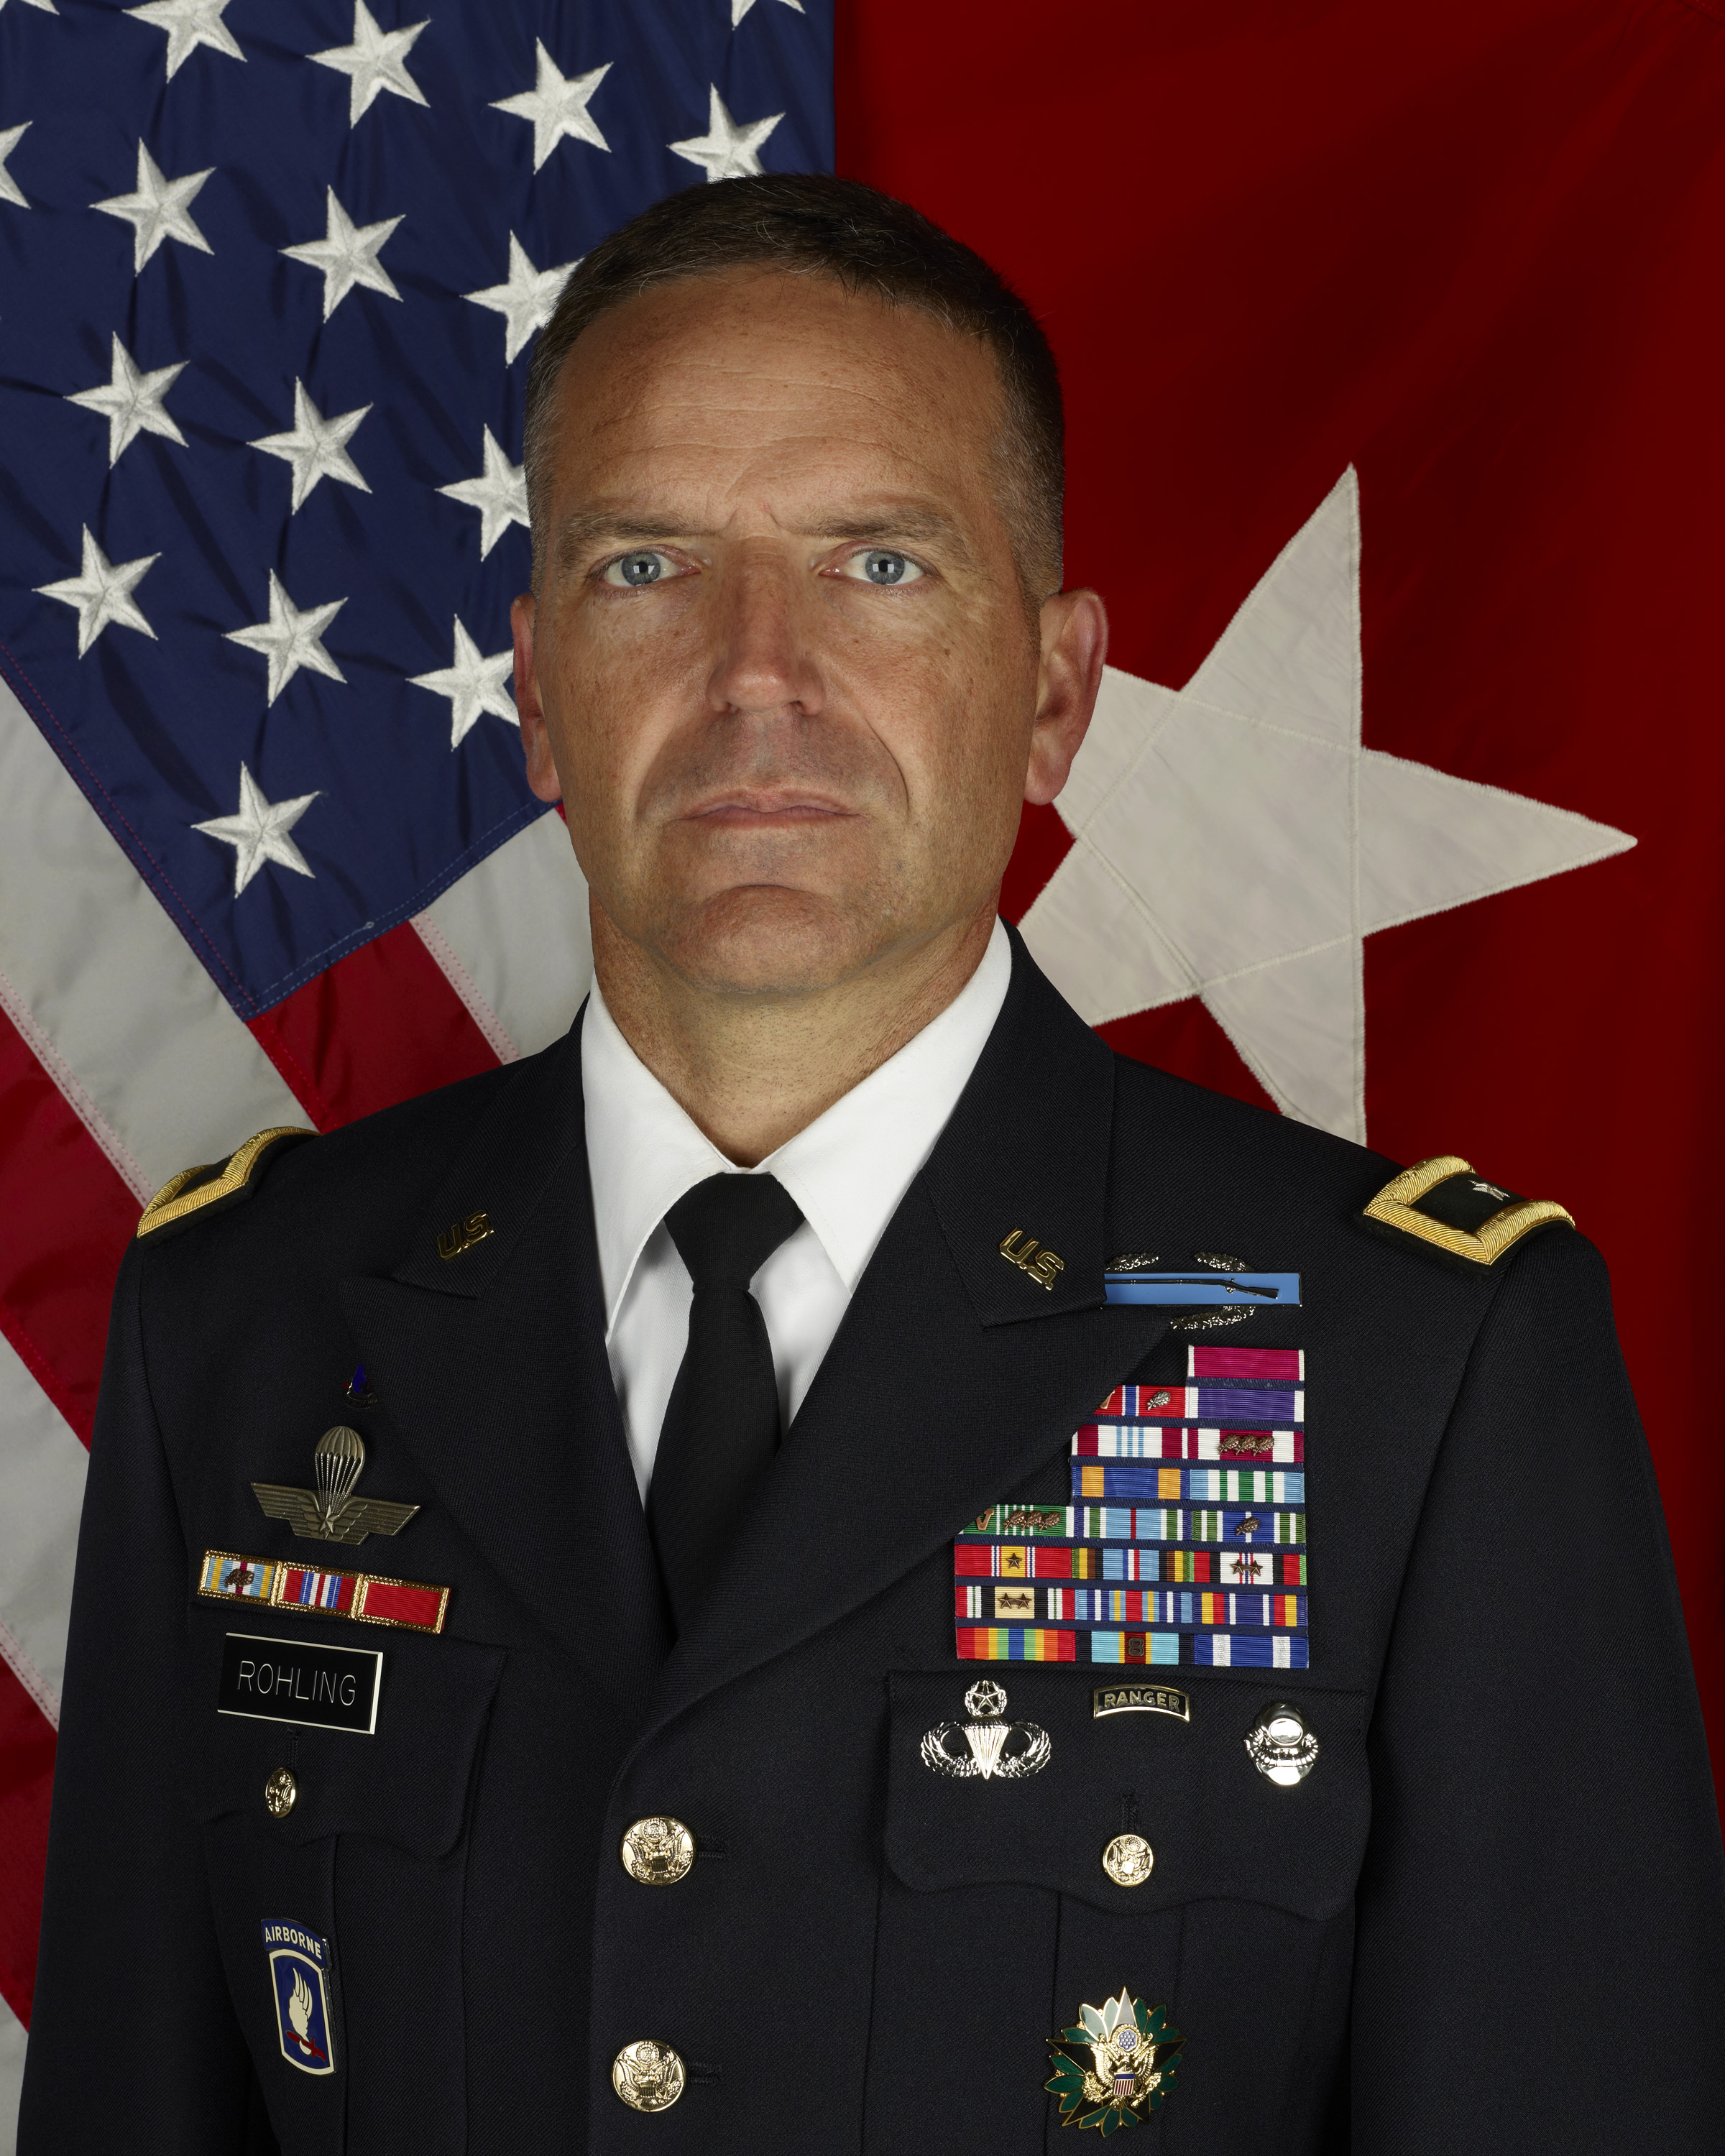 Andrew M. Rohling